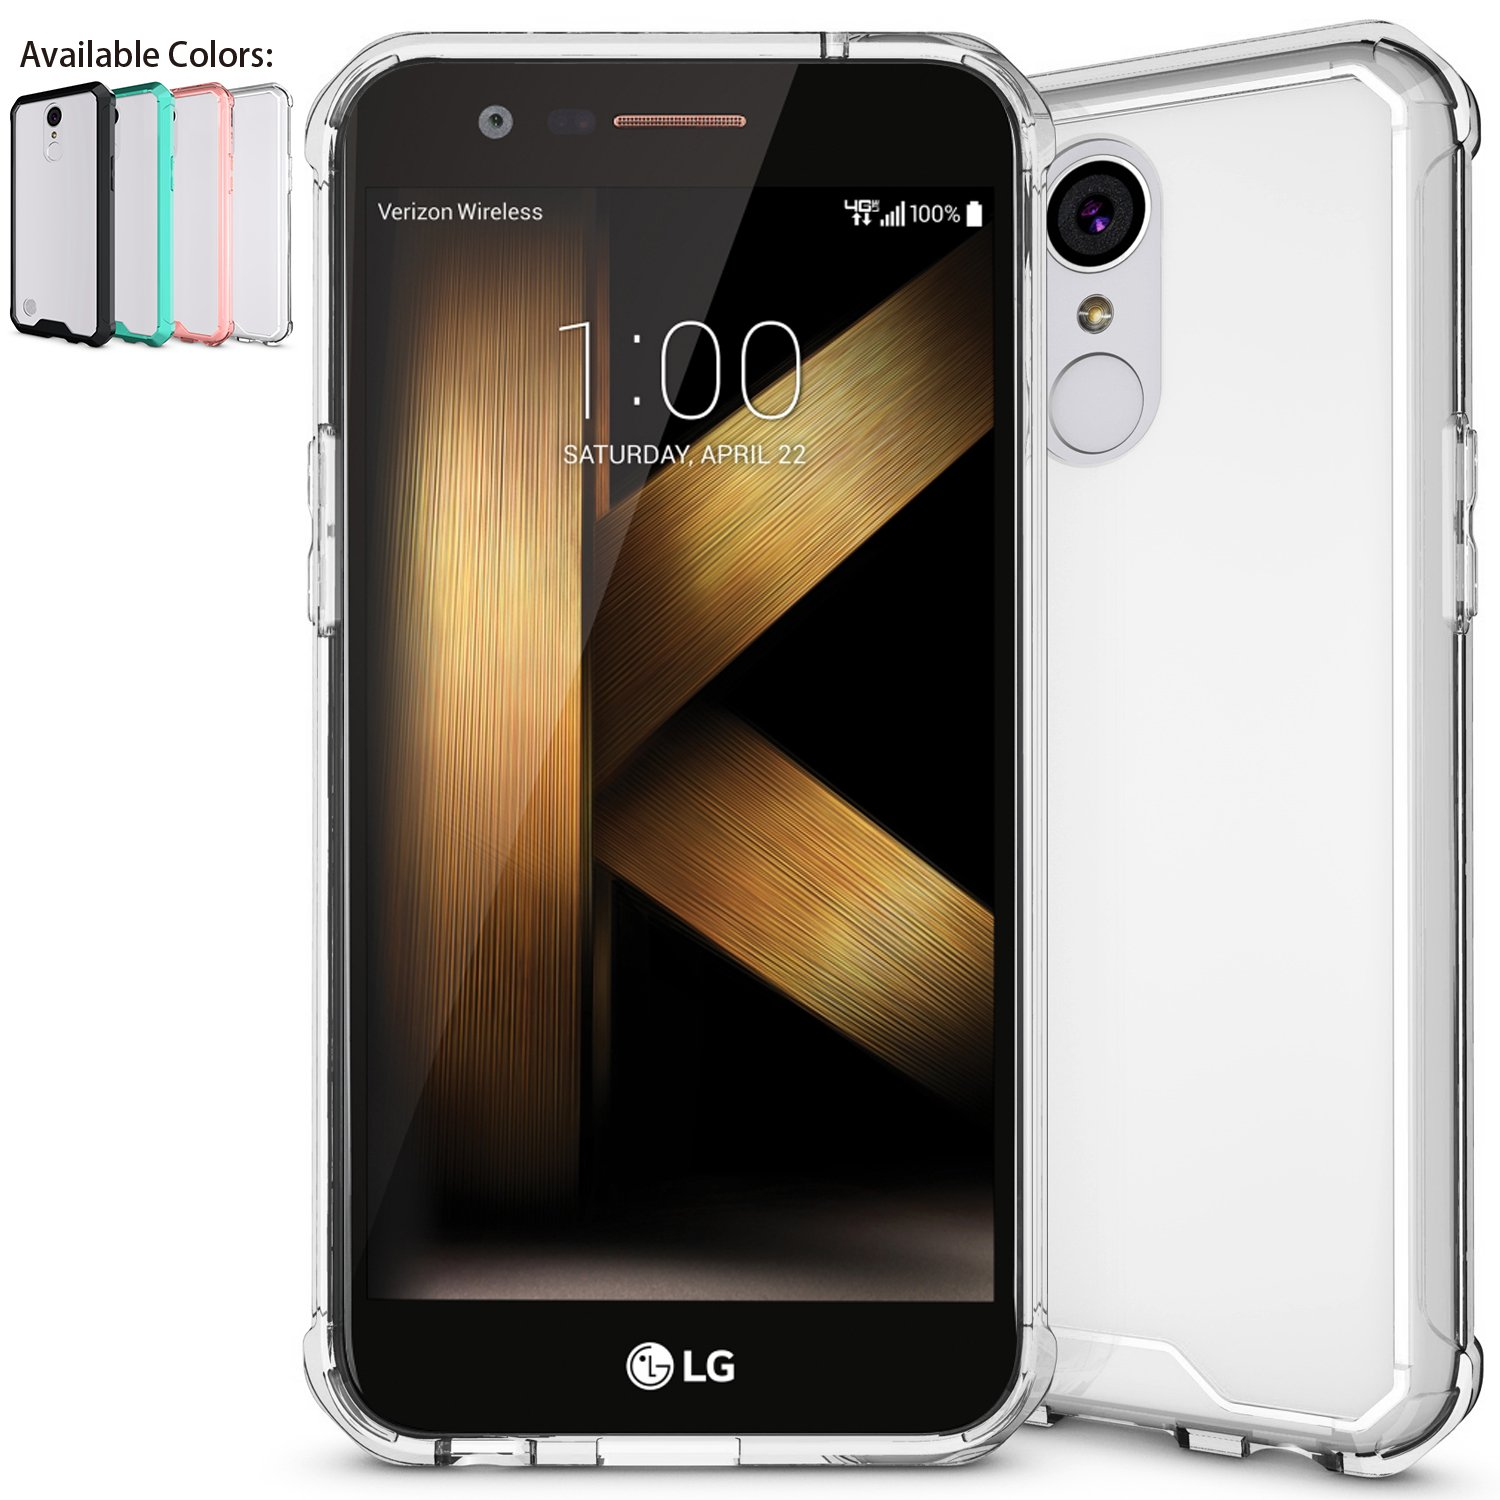 LG K20 Plus Case,LG K20 V Case,LG Harmony Case,LG Grace Case with HD Screen Protector,NiuBox Armor Ultimate Crystal PC Cover TPU Bumper Absorption Protective Clear Phone Case for LG K10 2017 Clear